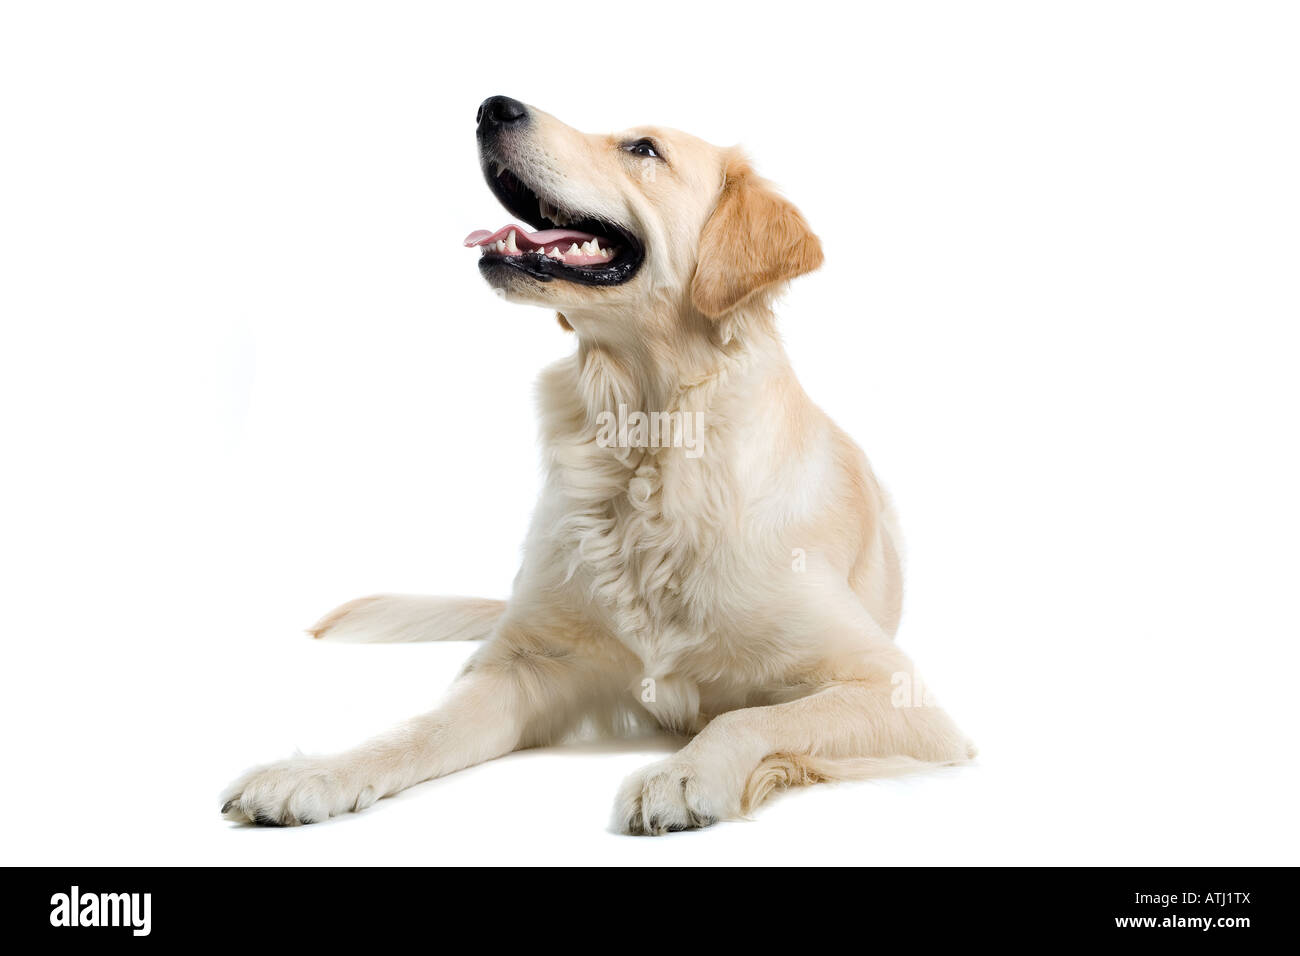 golden retriever isolated on white - Stock Image